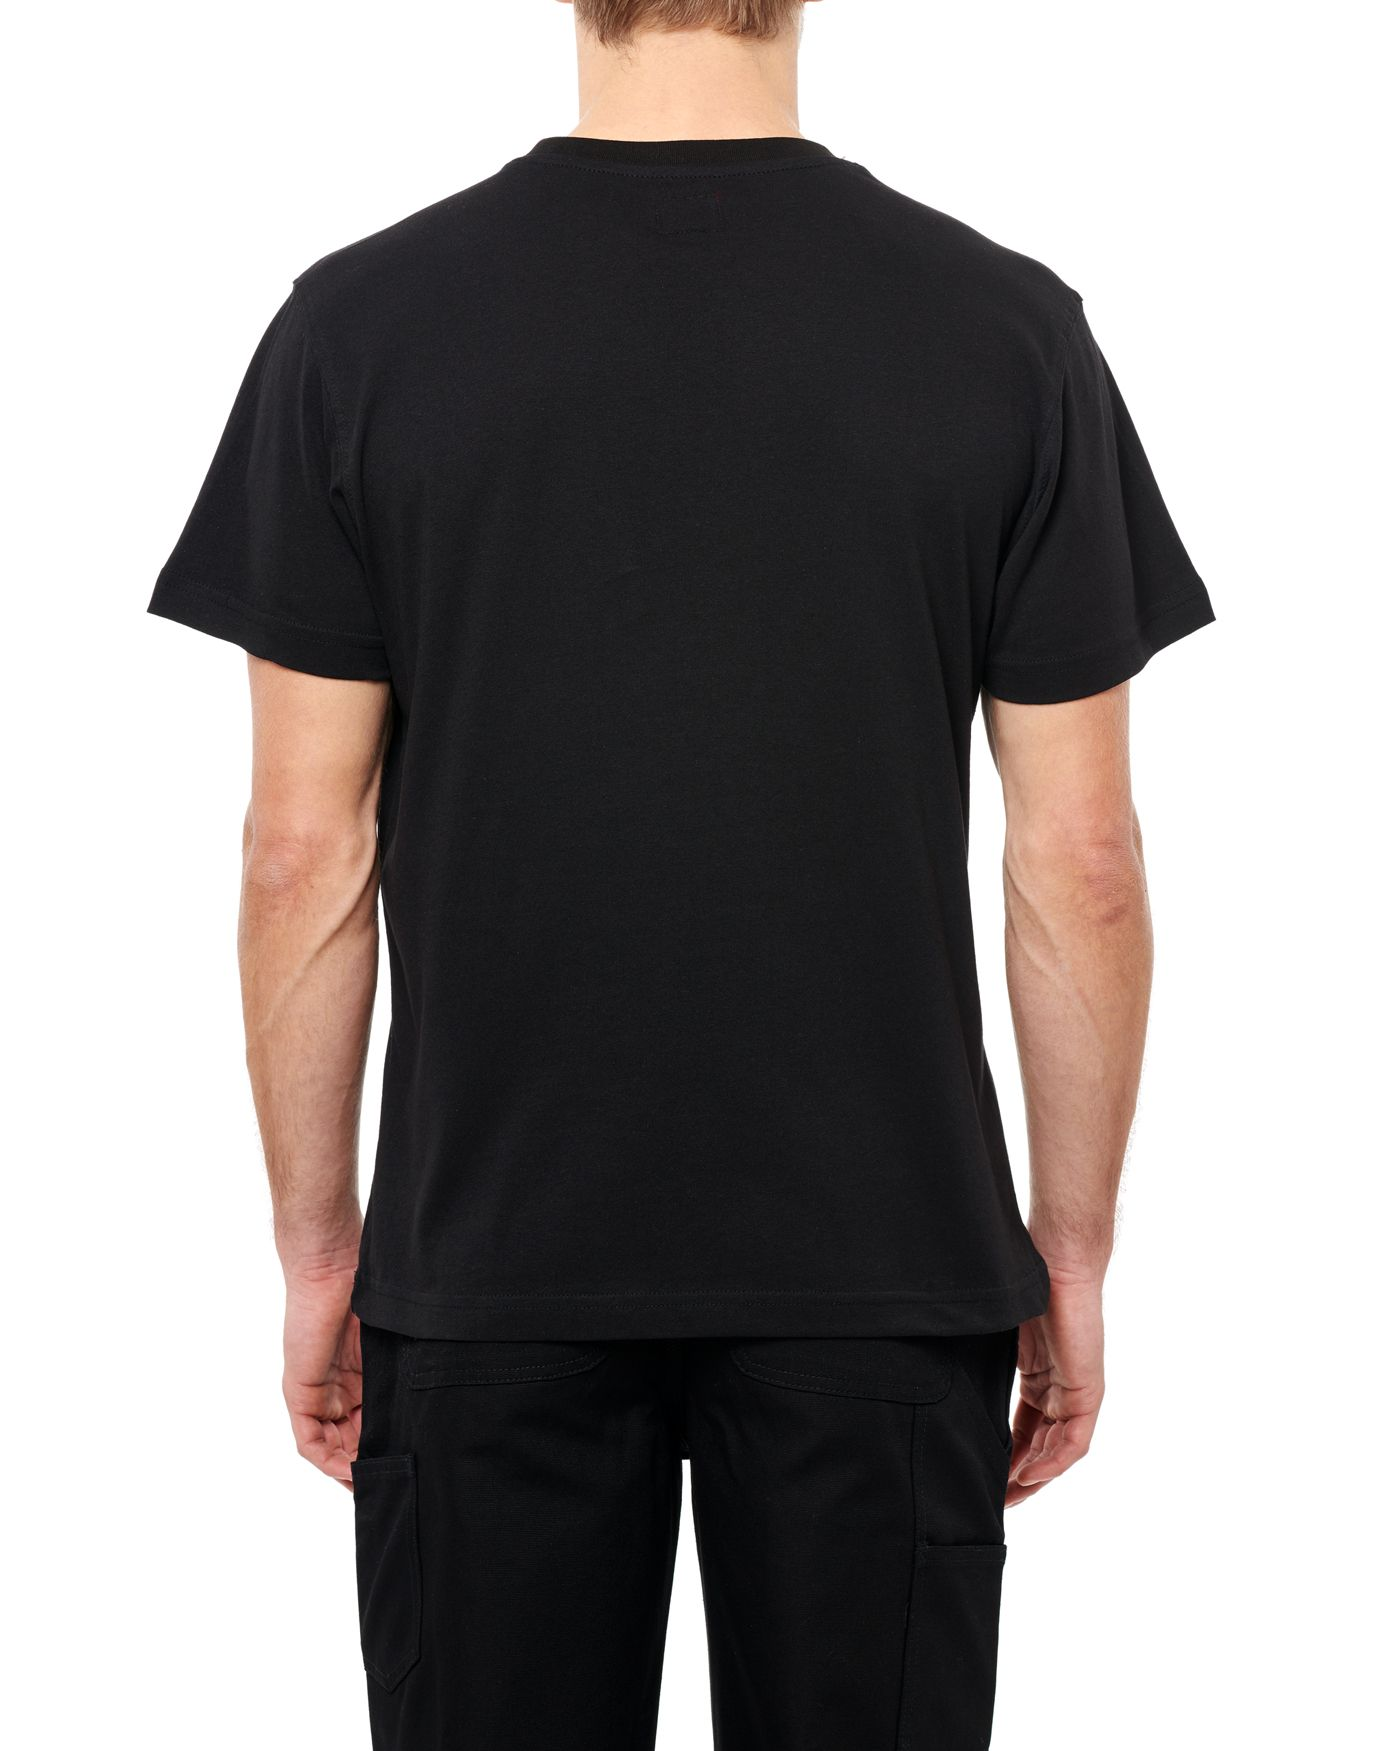 Photo of Outlaw Pete S/S T-shirt, Black